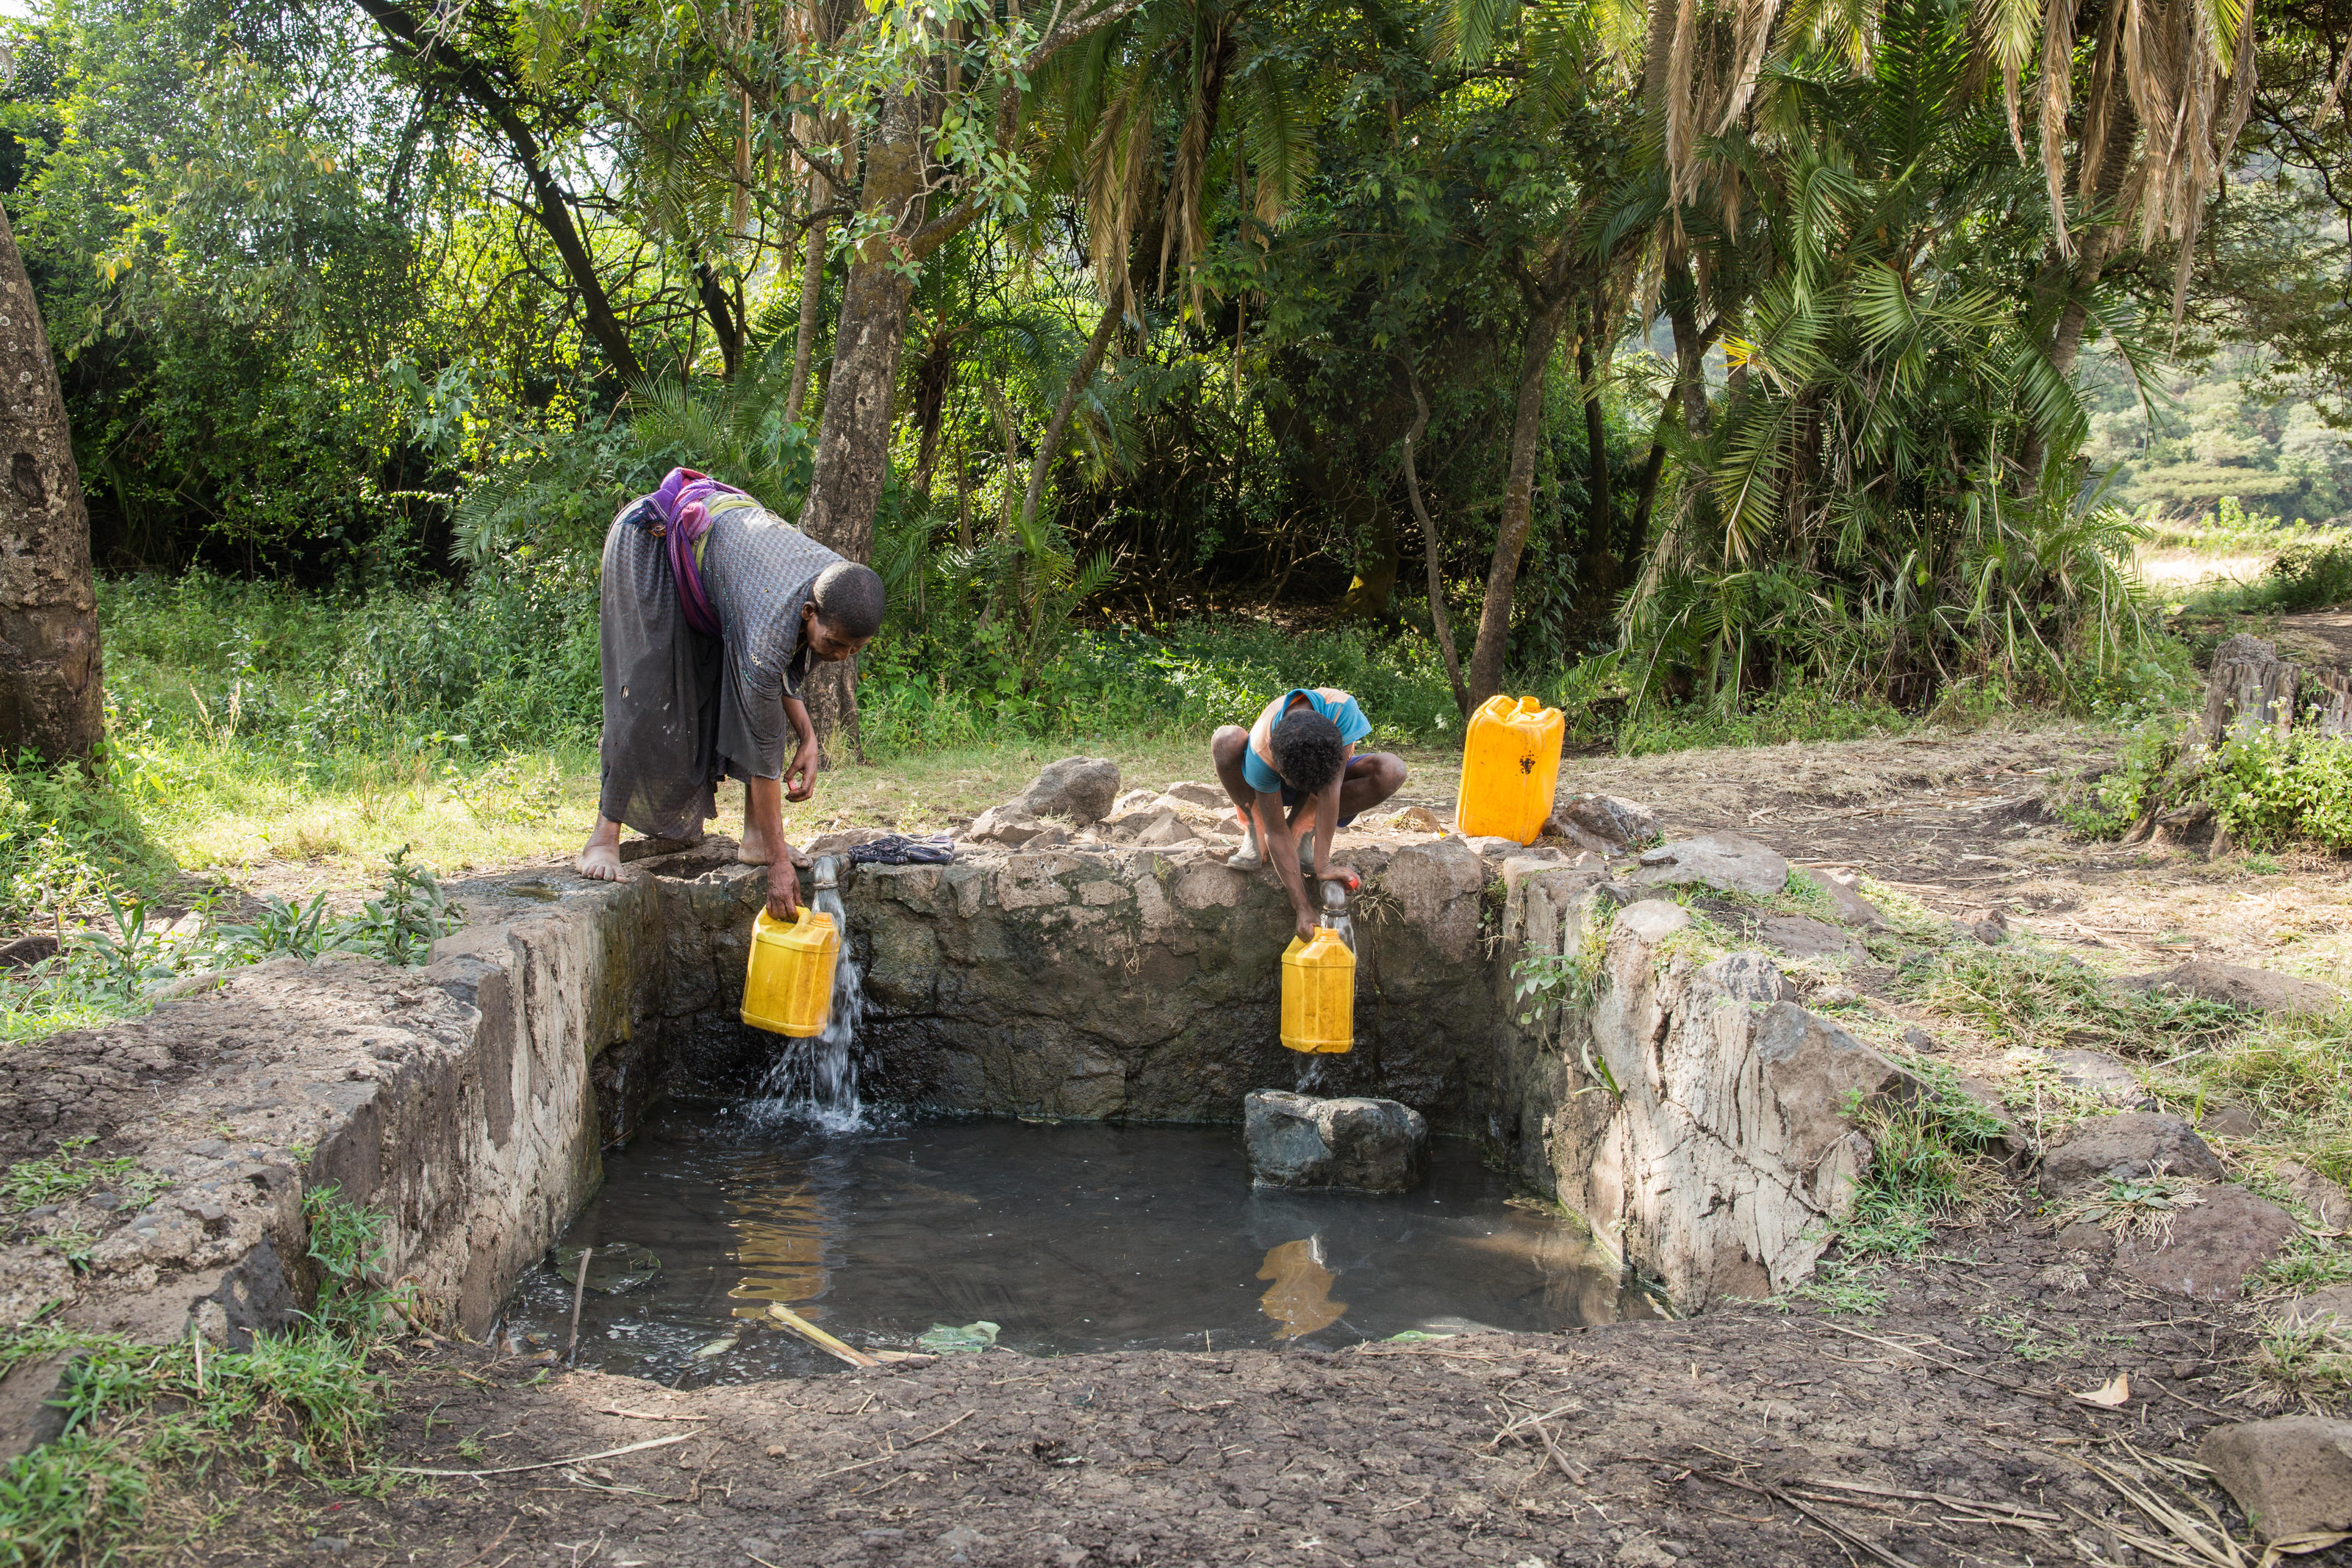 Tirunesh Alemu, employed by Yiraber Health Centre in Ethiopia to fetch water